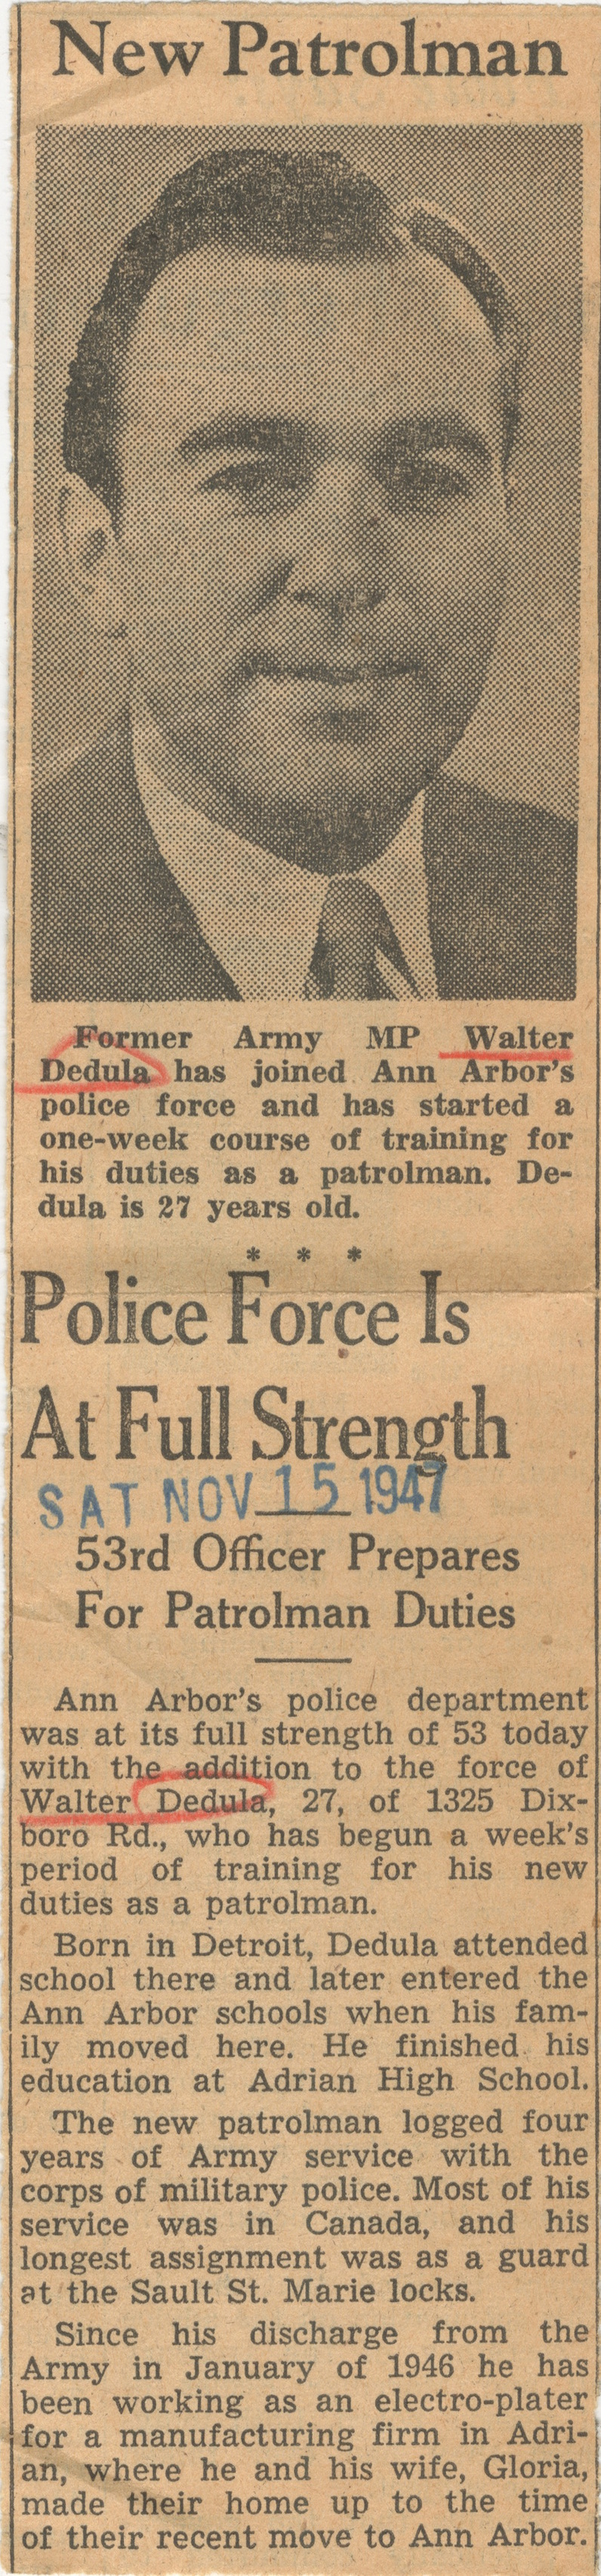 Police Force Is At Full Strength image